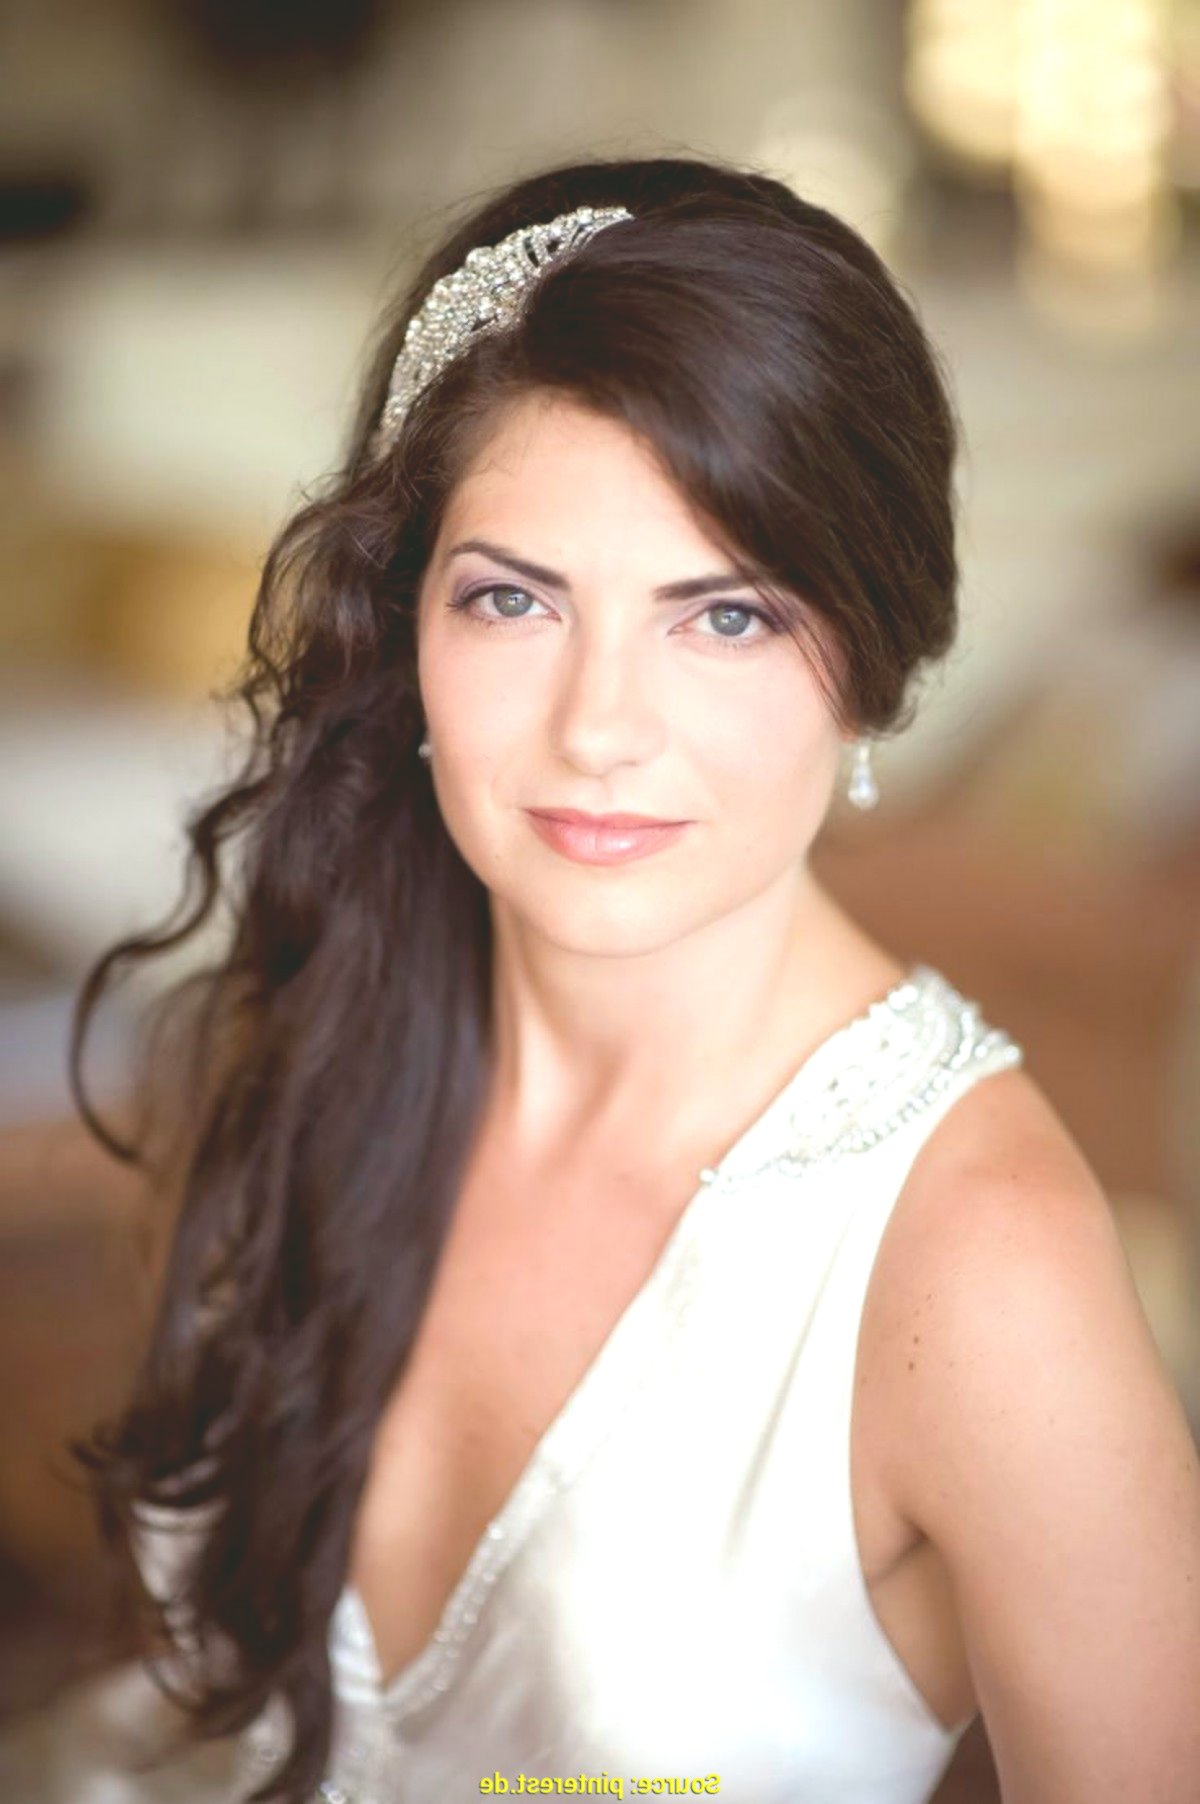 Outstanding open hair wedding portrait - Beautiful open hair wedding model